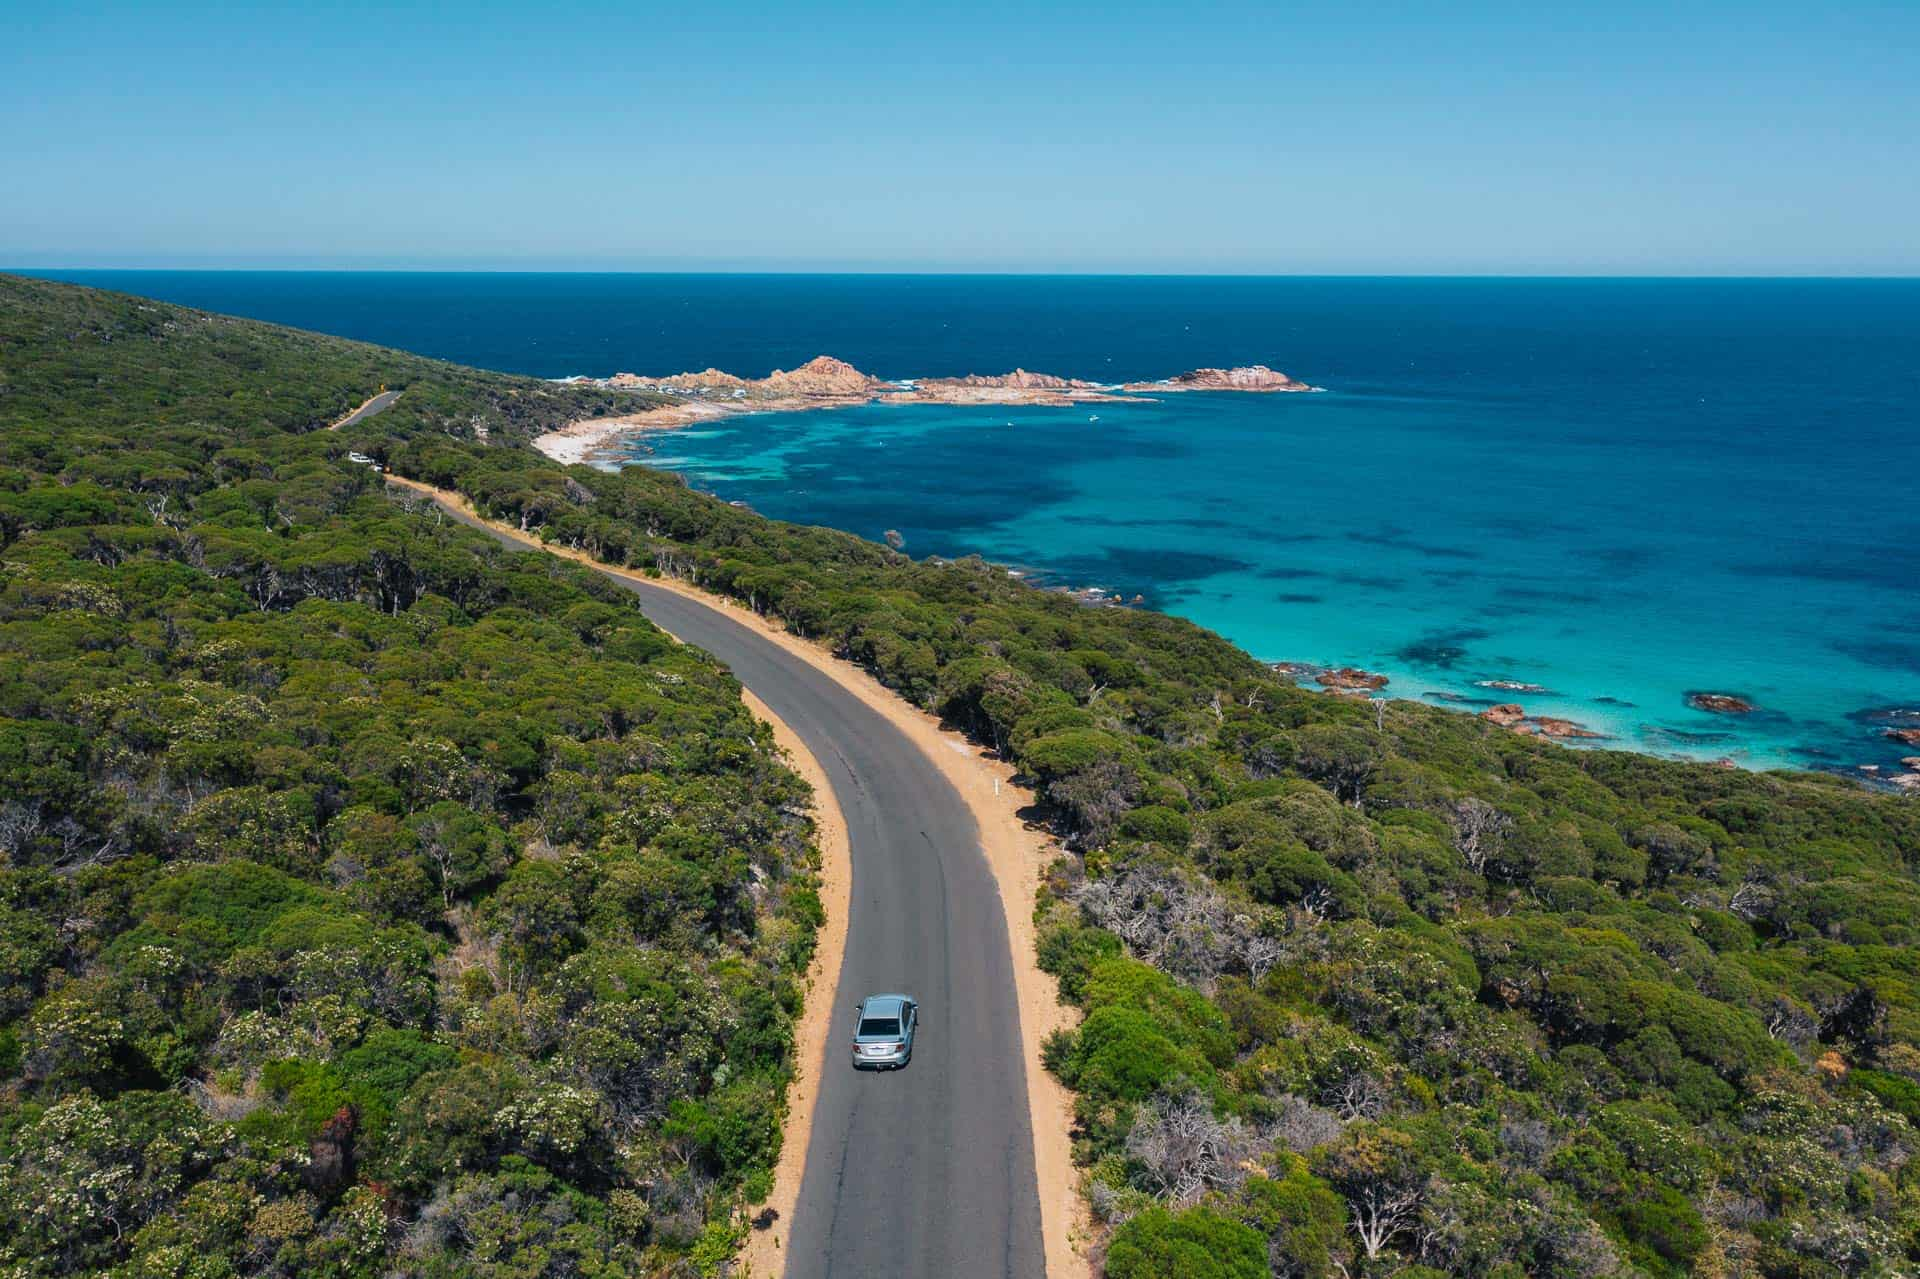 things to do in margaret river, what to do in margaret river, best things to do in margaret river, things to do margaret river